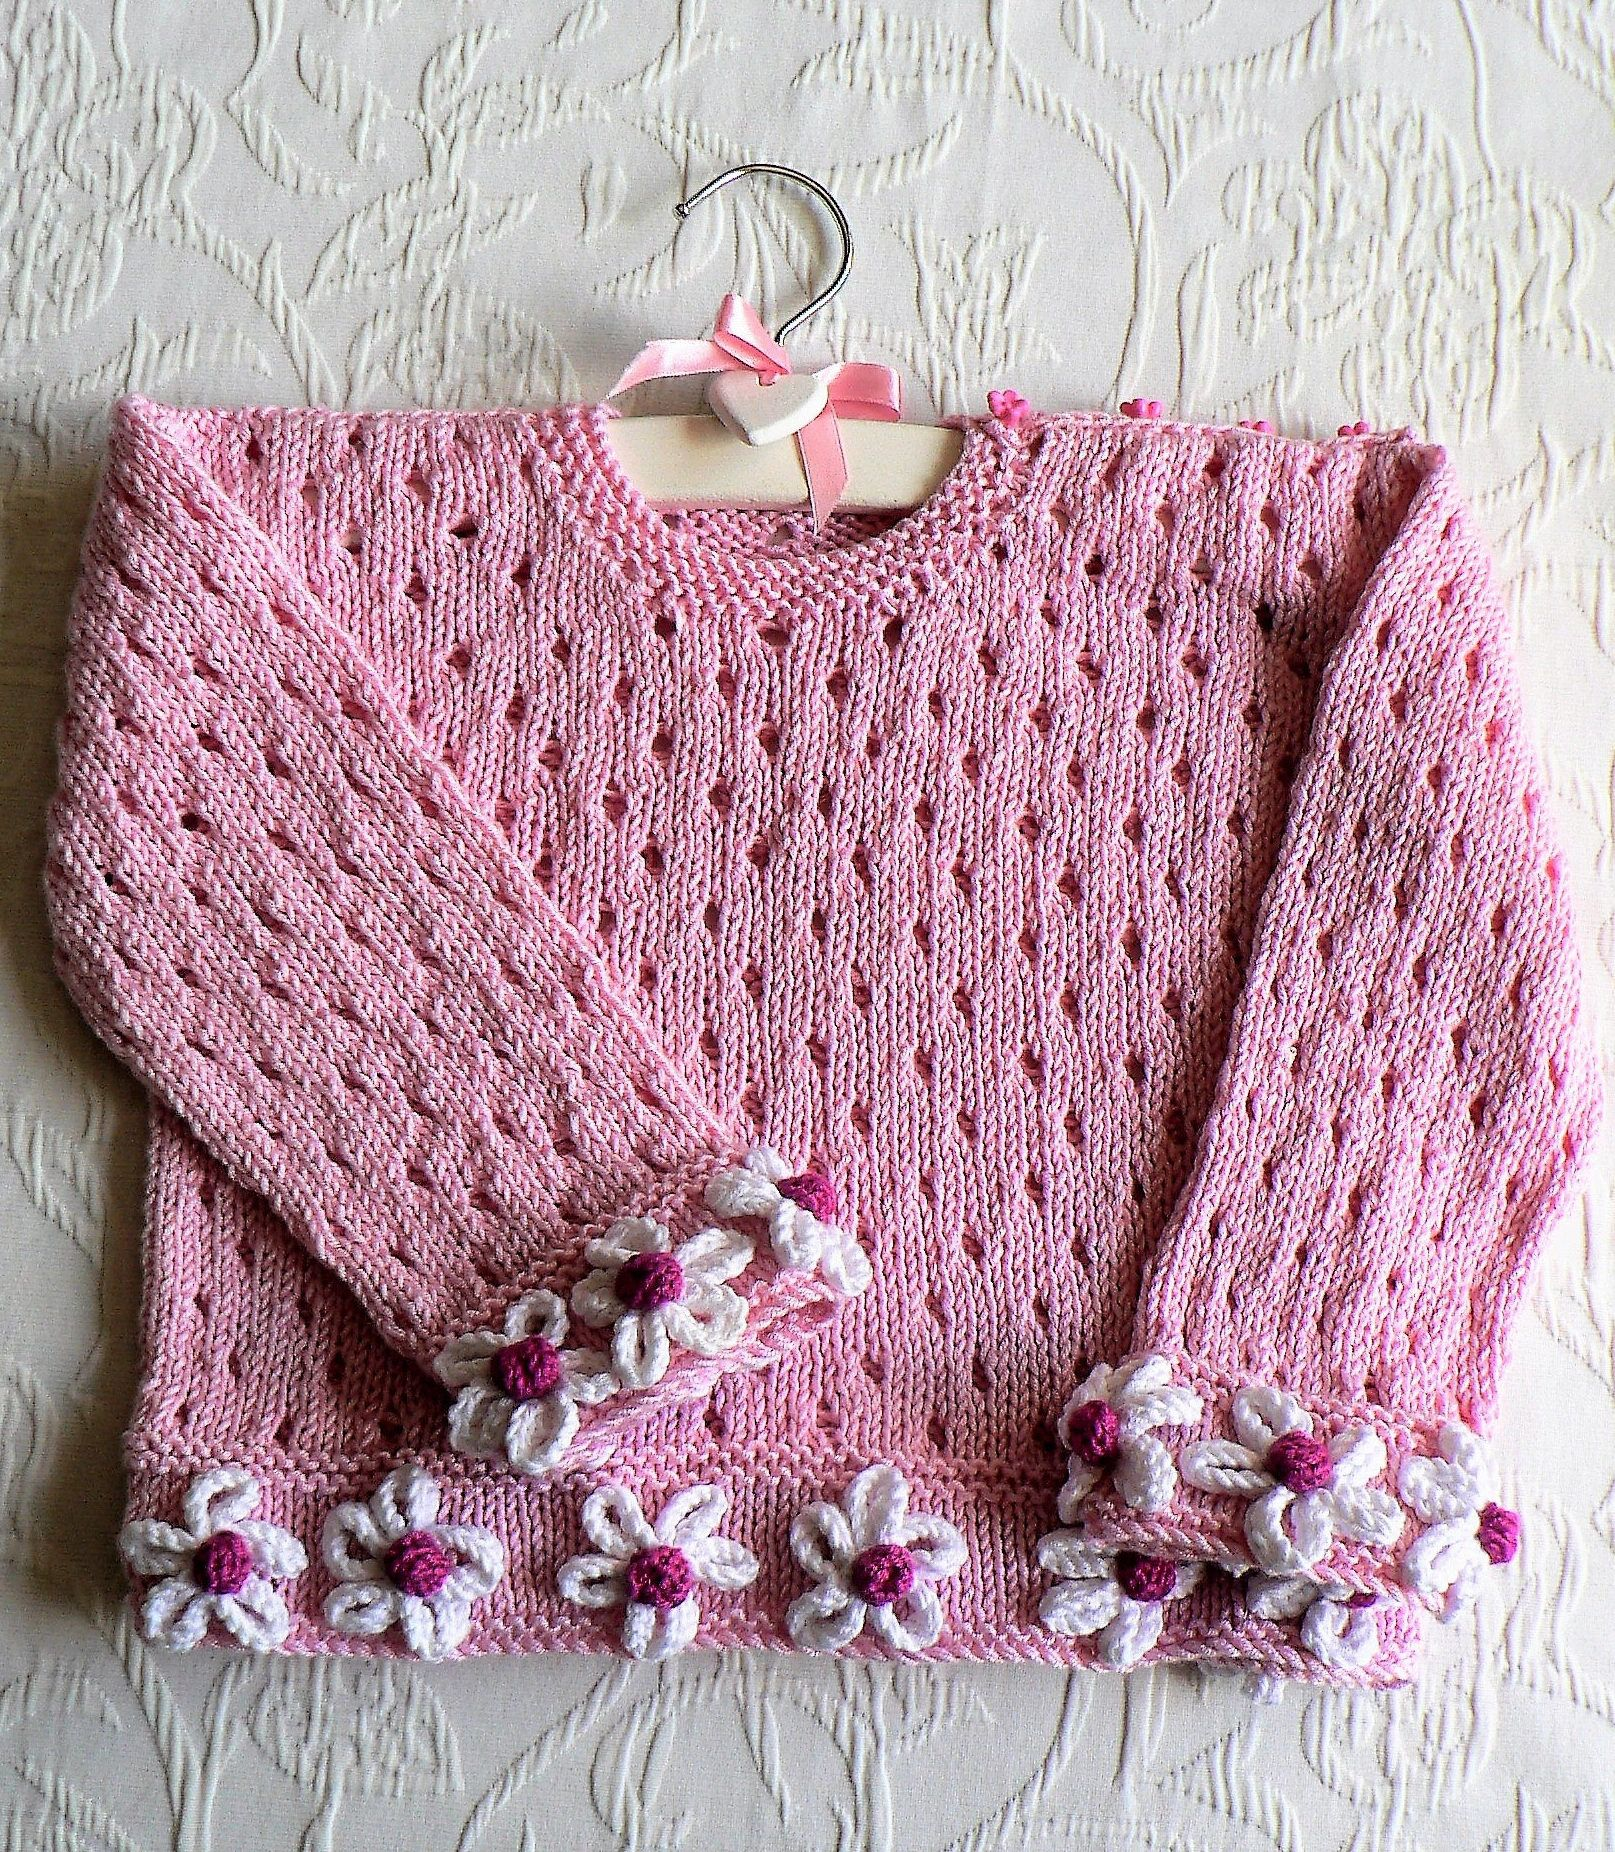 Knitting pattern for daisy days baby sweater long sleeved knitting pattern for daisy days baby sweater long sleeved pullover with buttons at shoulders in bankloansurffo Gallery